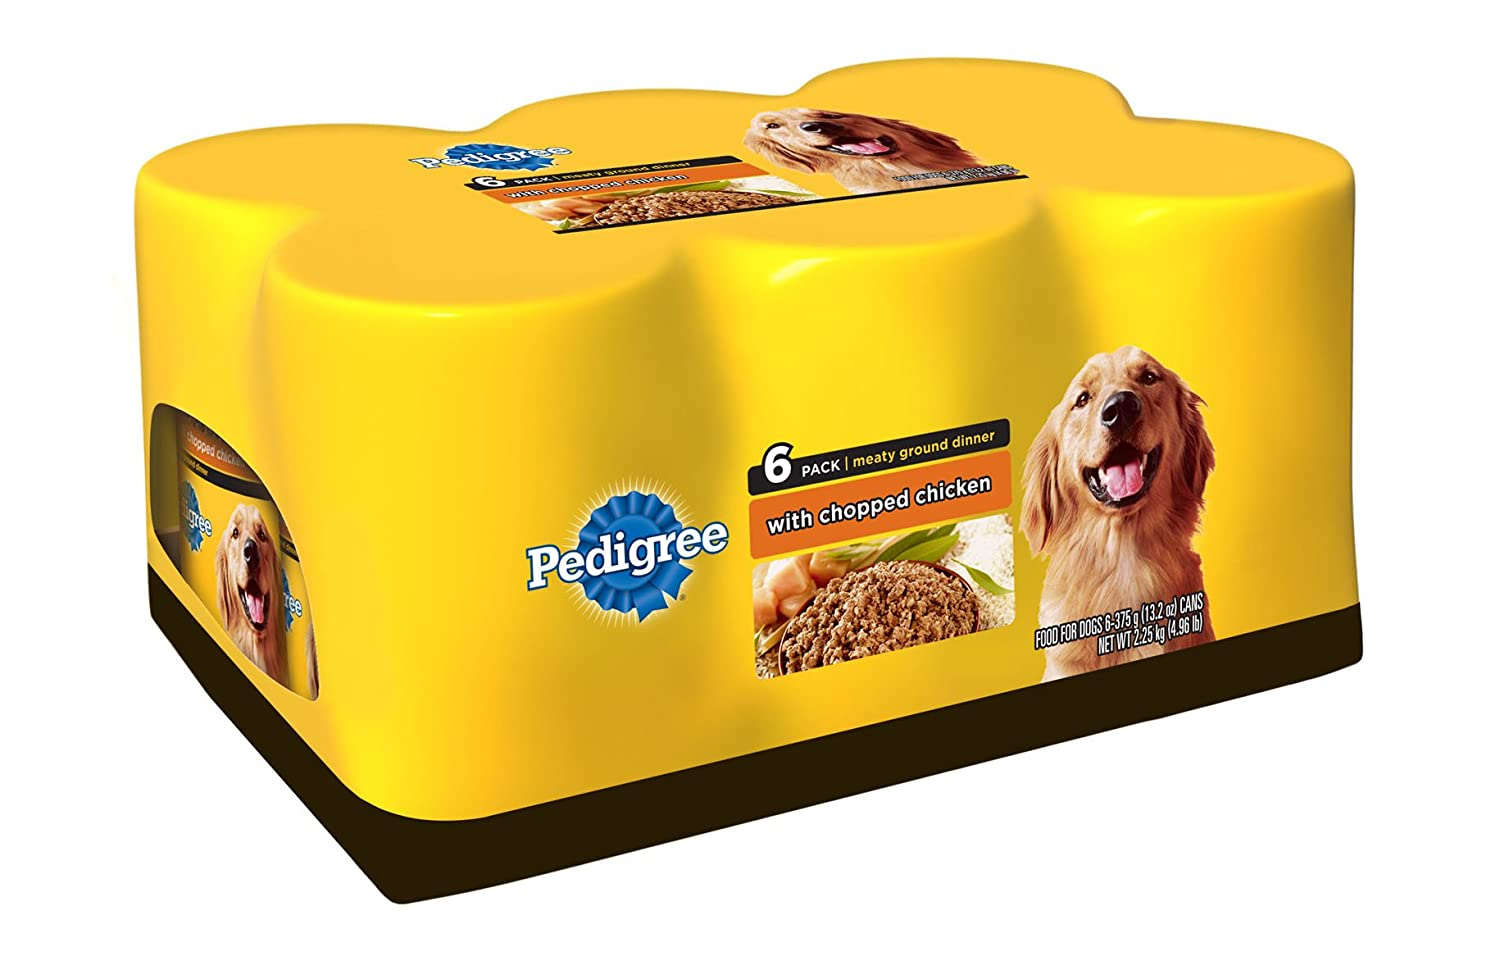 Pedigree Canned Dog Food  With Chopped Chicken  Wet Dog